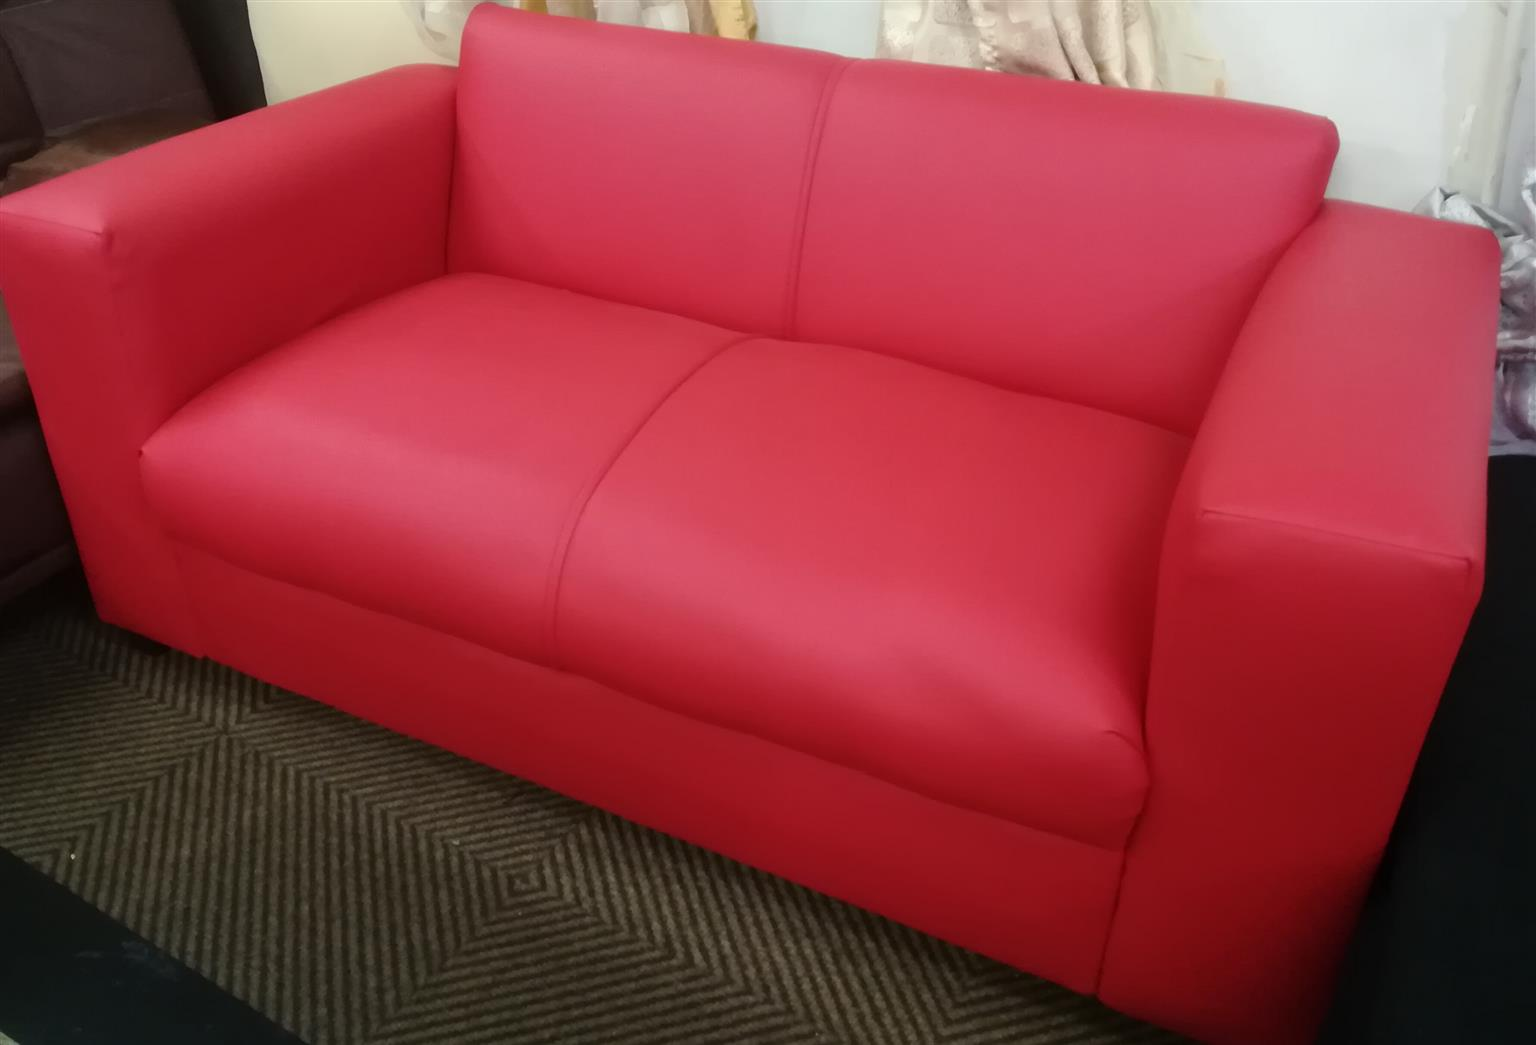 New red couch